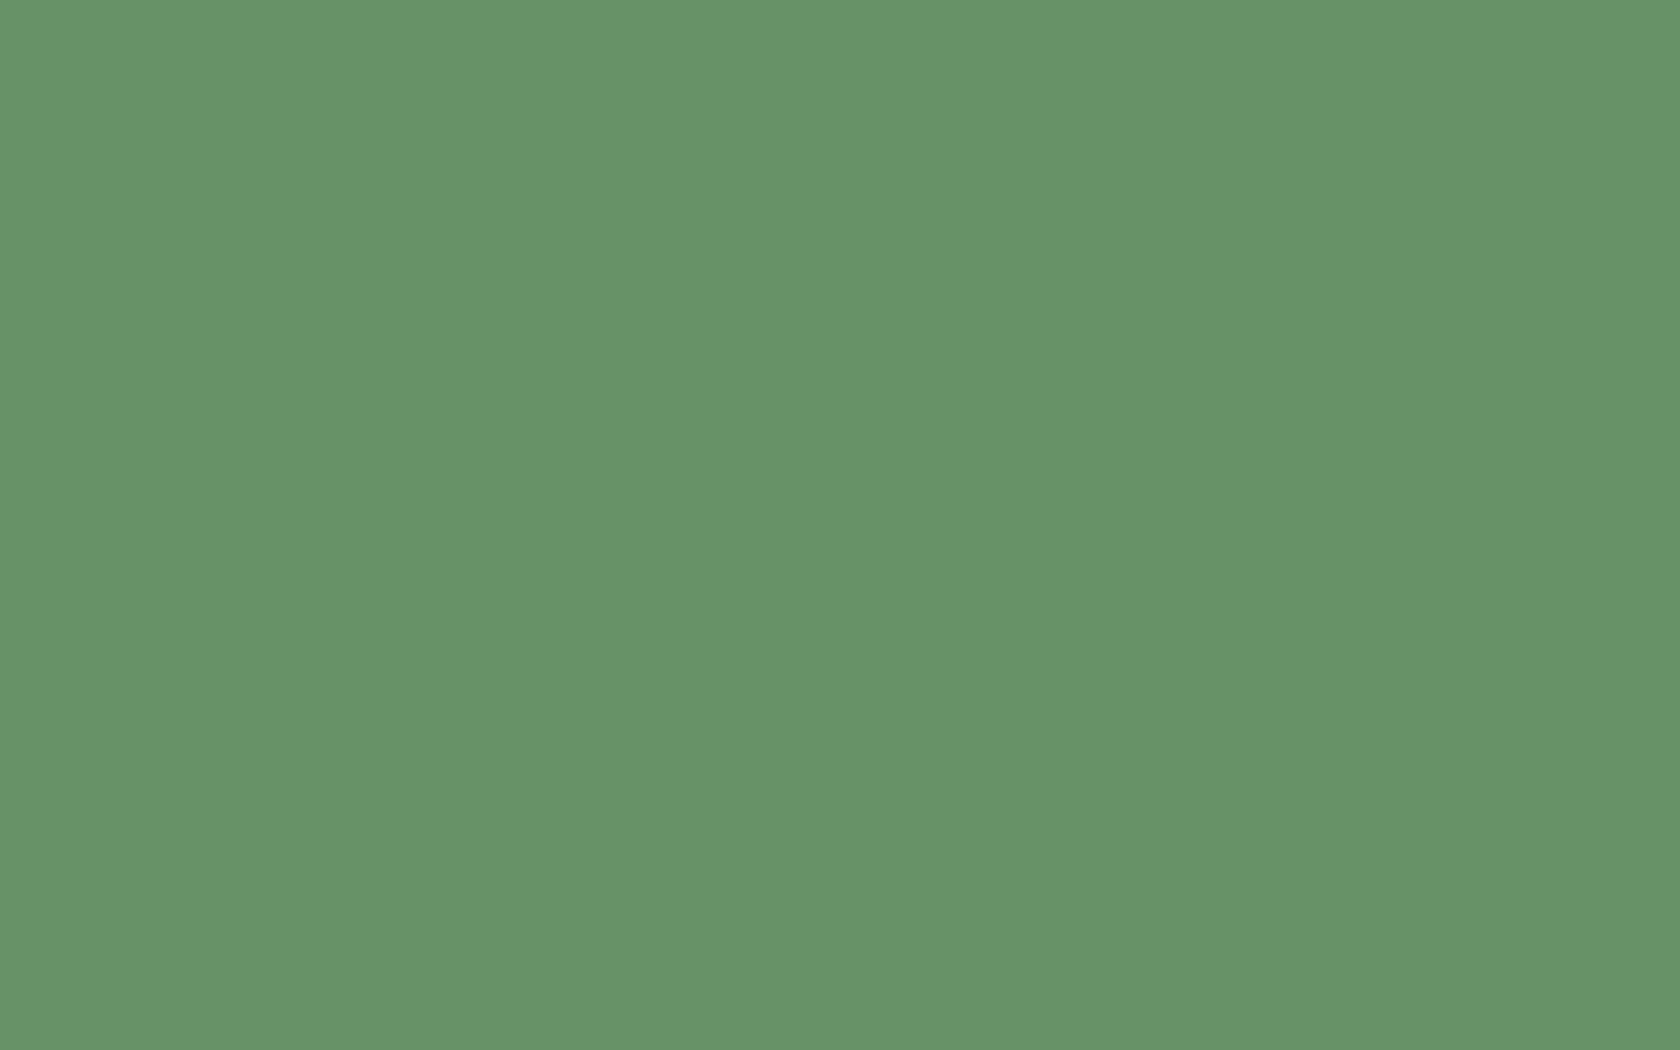 1680x1050 Russian Green Solid Color Background